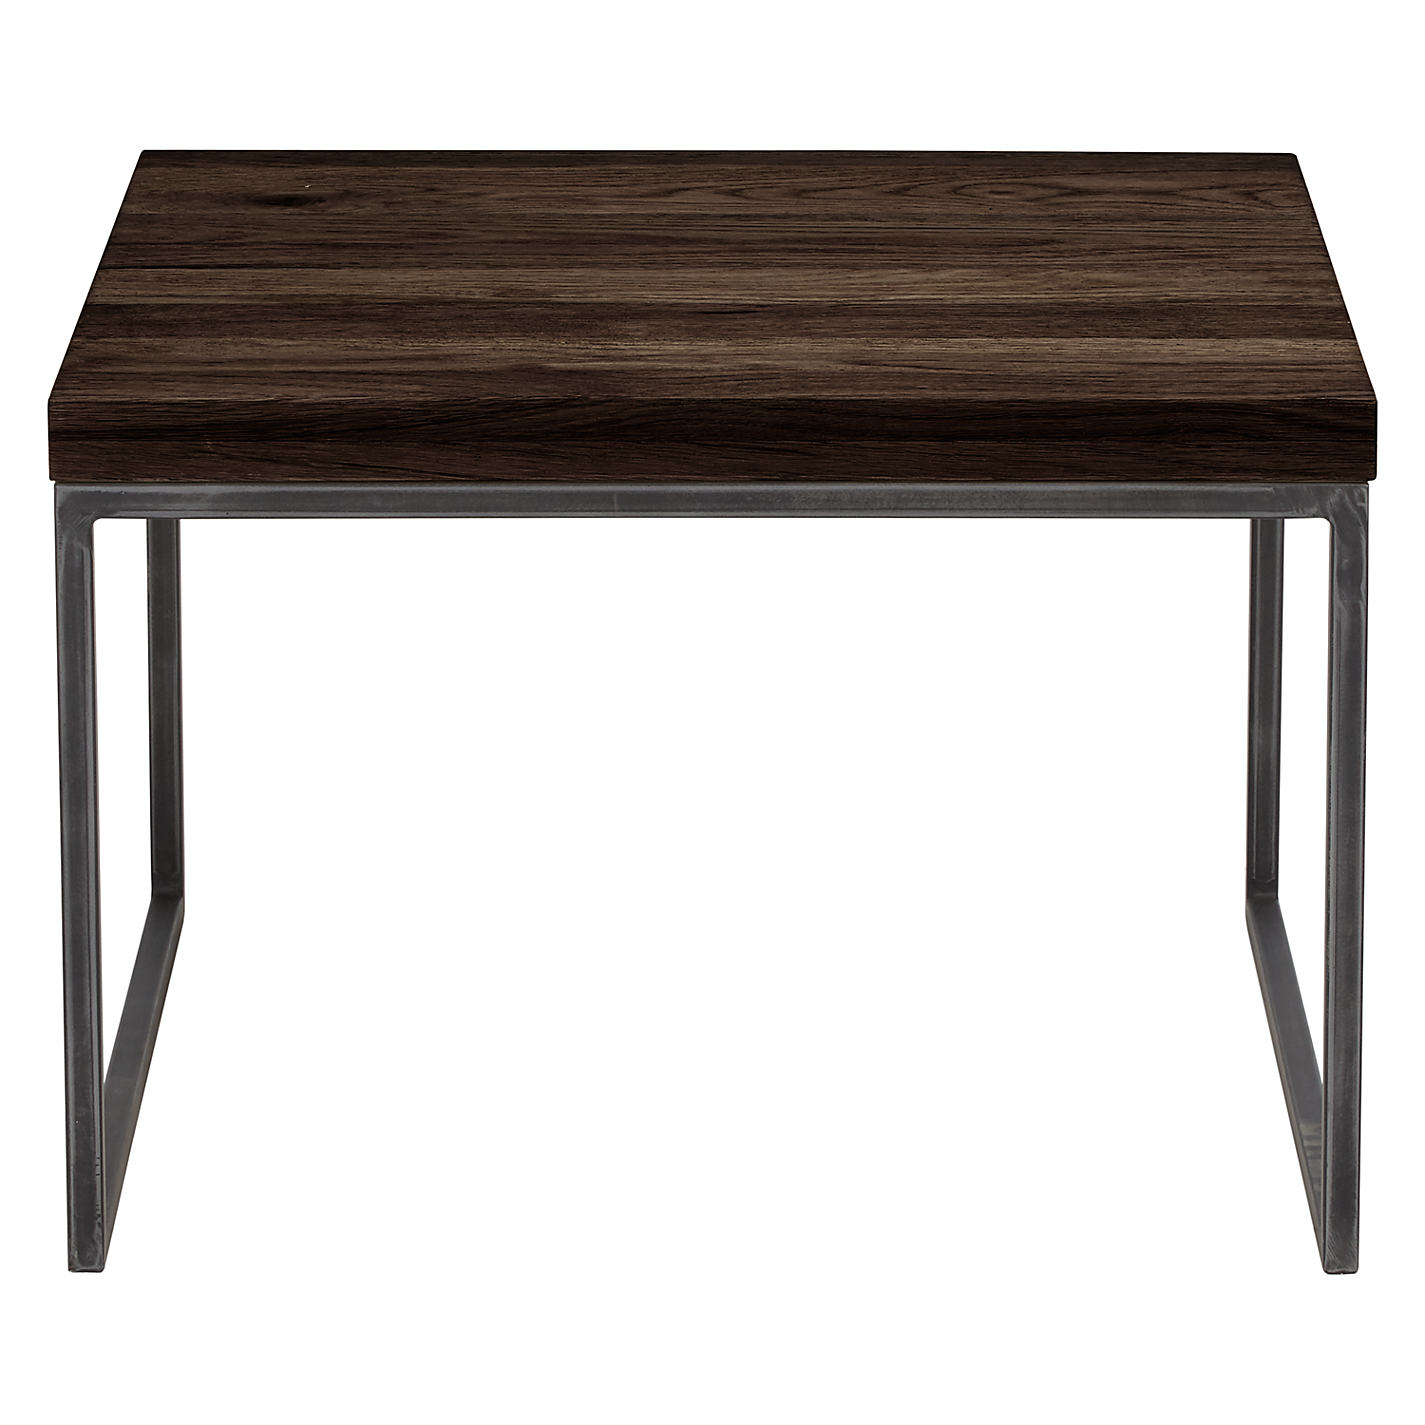 Buy John Lewis Calia Coffee Table with Nest of 2 Tables